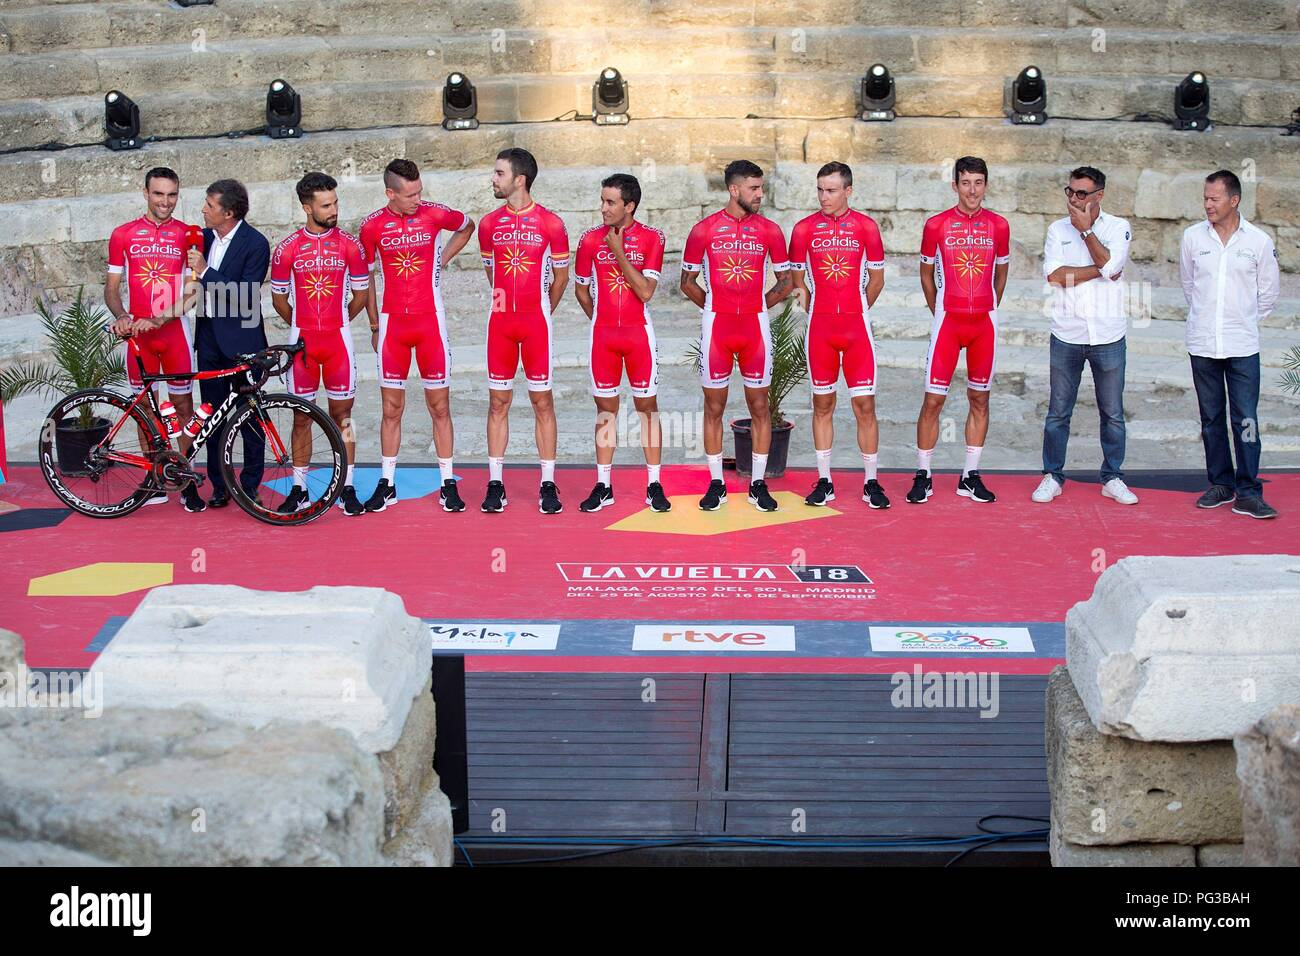 Malaga, Spain. 24th August, 2018. Cofidis cycling team's members pose on the stage at Roman Theater during the presentation of the cycling teams competing in La Vuelta cycling tour in Malaga, southern Spain, 23 August 2018 (issued on 24 August 2018). La Vuelta runs from 25 August to 16 September. EFE/ Daniel Perez Credit: EFE News Agency/Alamy Live News Stock Photo